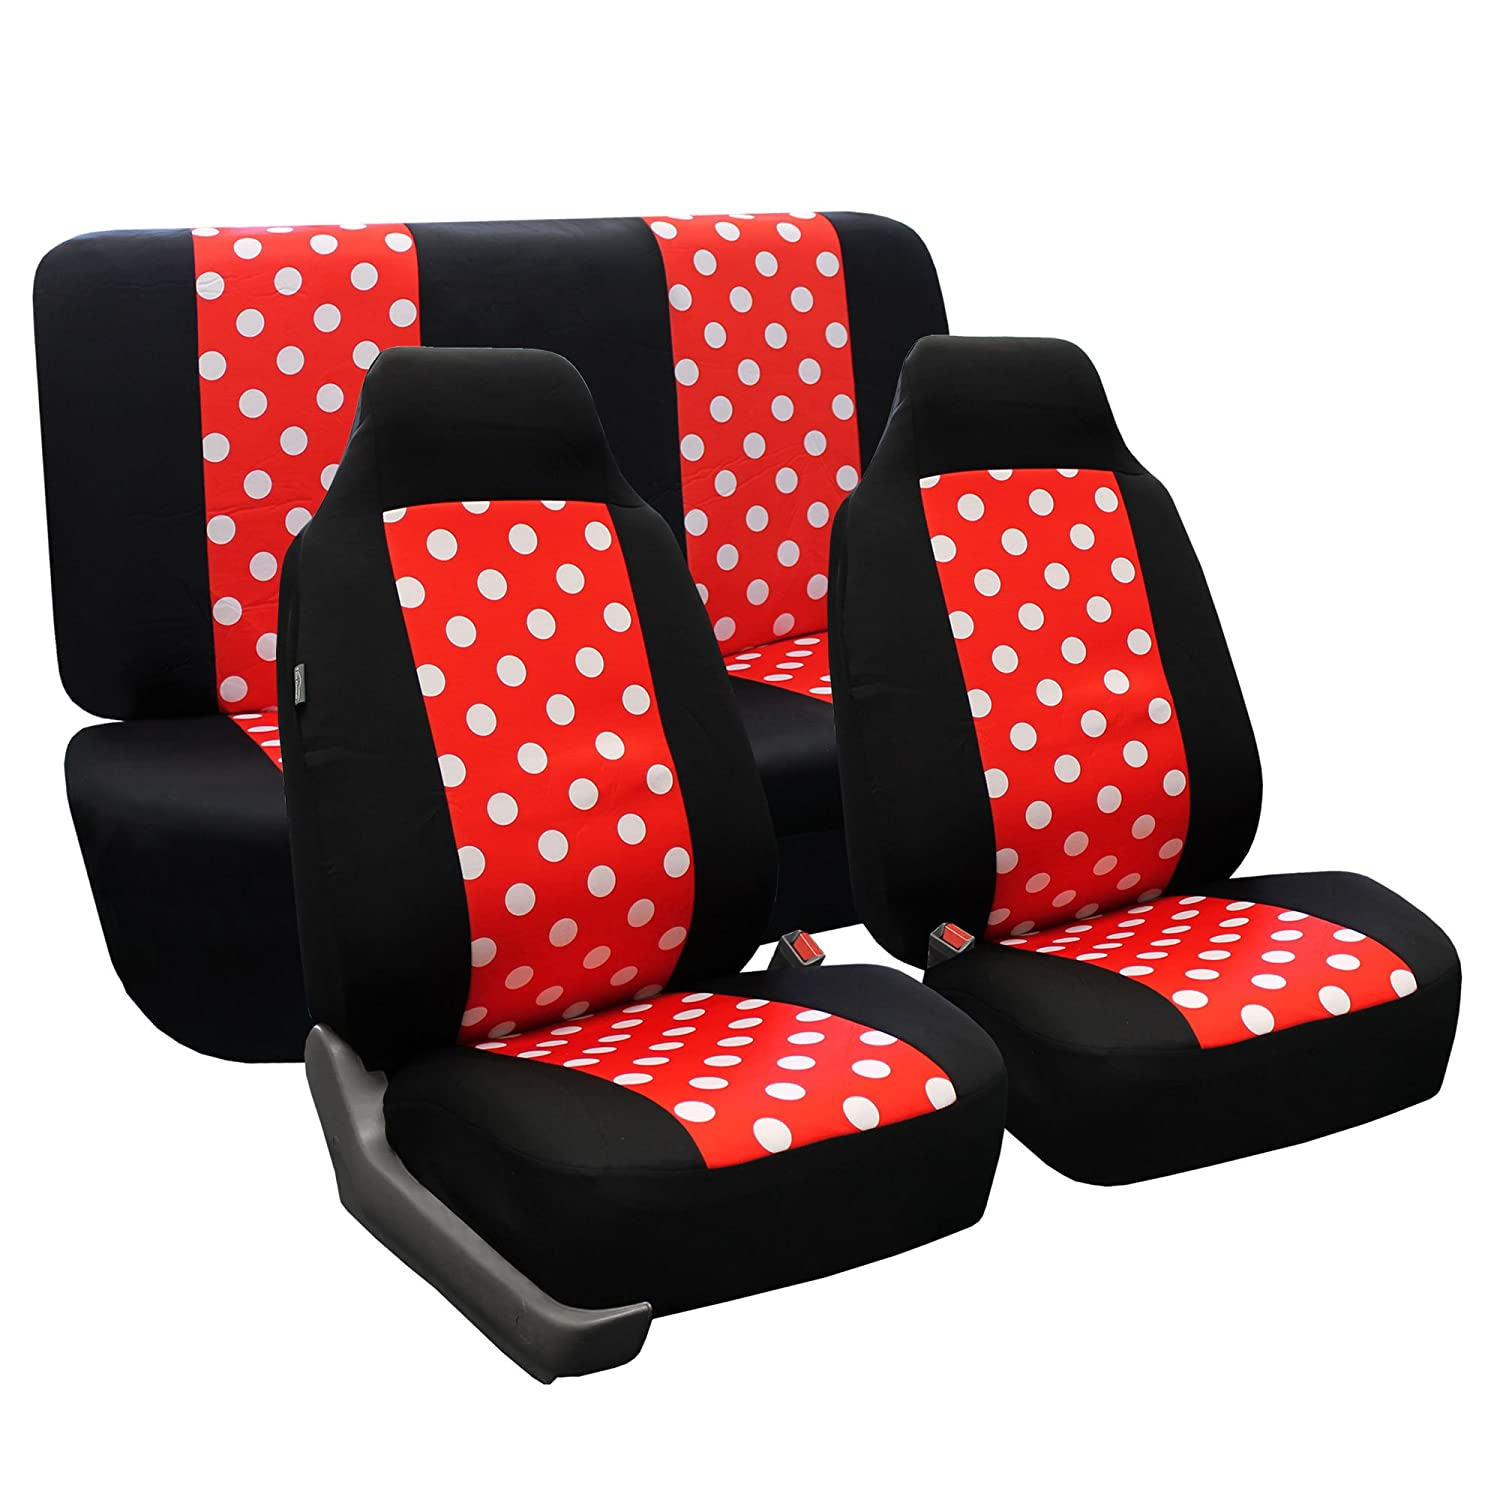 Amazon.com FH GROUP FH-FB115112 Full Set Polka Dots Car Seat Covers for Car Van and SUV Red / Black color Automotive  sc 1 st  Amazon.com & Amazon.com: FH GROUP FH-FB115112 Full Set Polka Dots Car Seat ... markmcfarlin.com